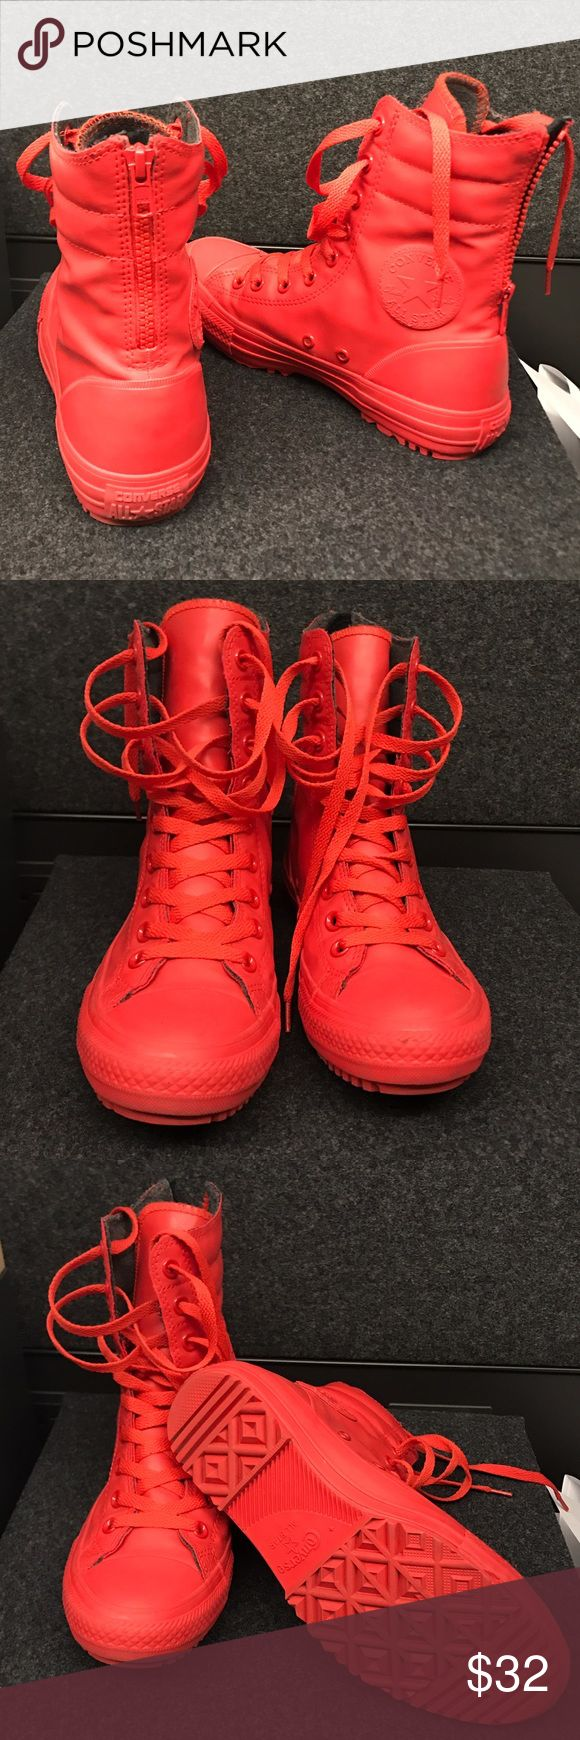 Like brand new Converse women's rain boots Converse Chuck Taylor women's size 7, red rain boots. Only worn twice! Converse Shoes Lace Up Boots